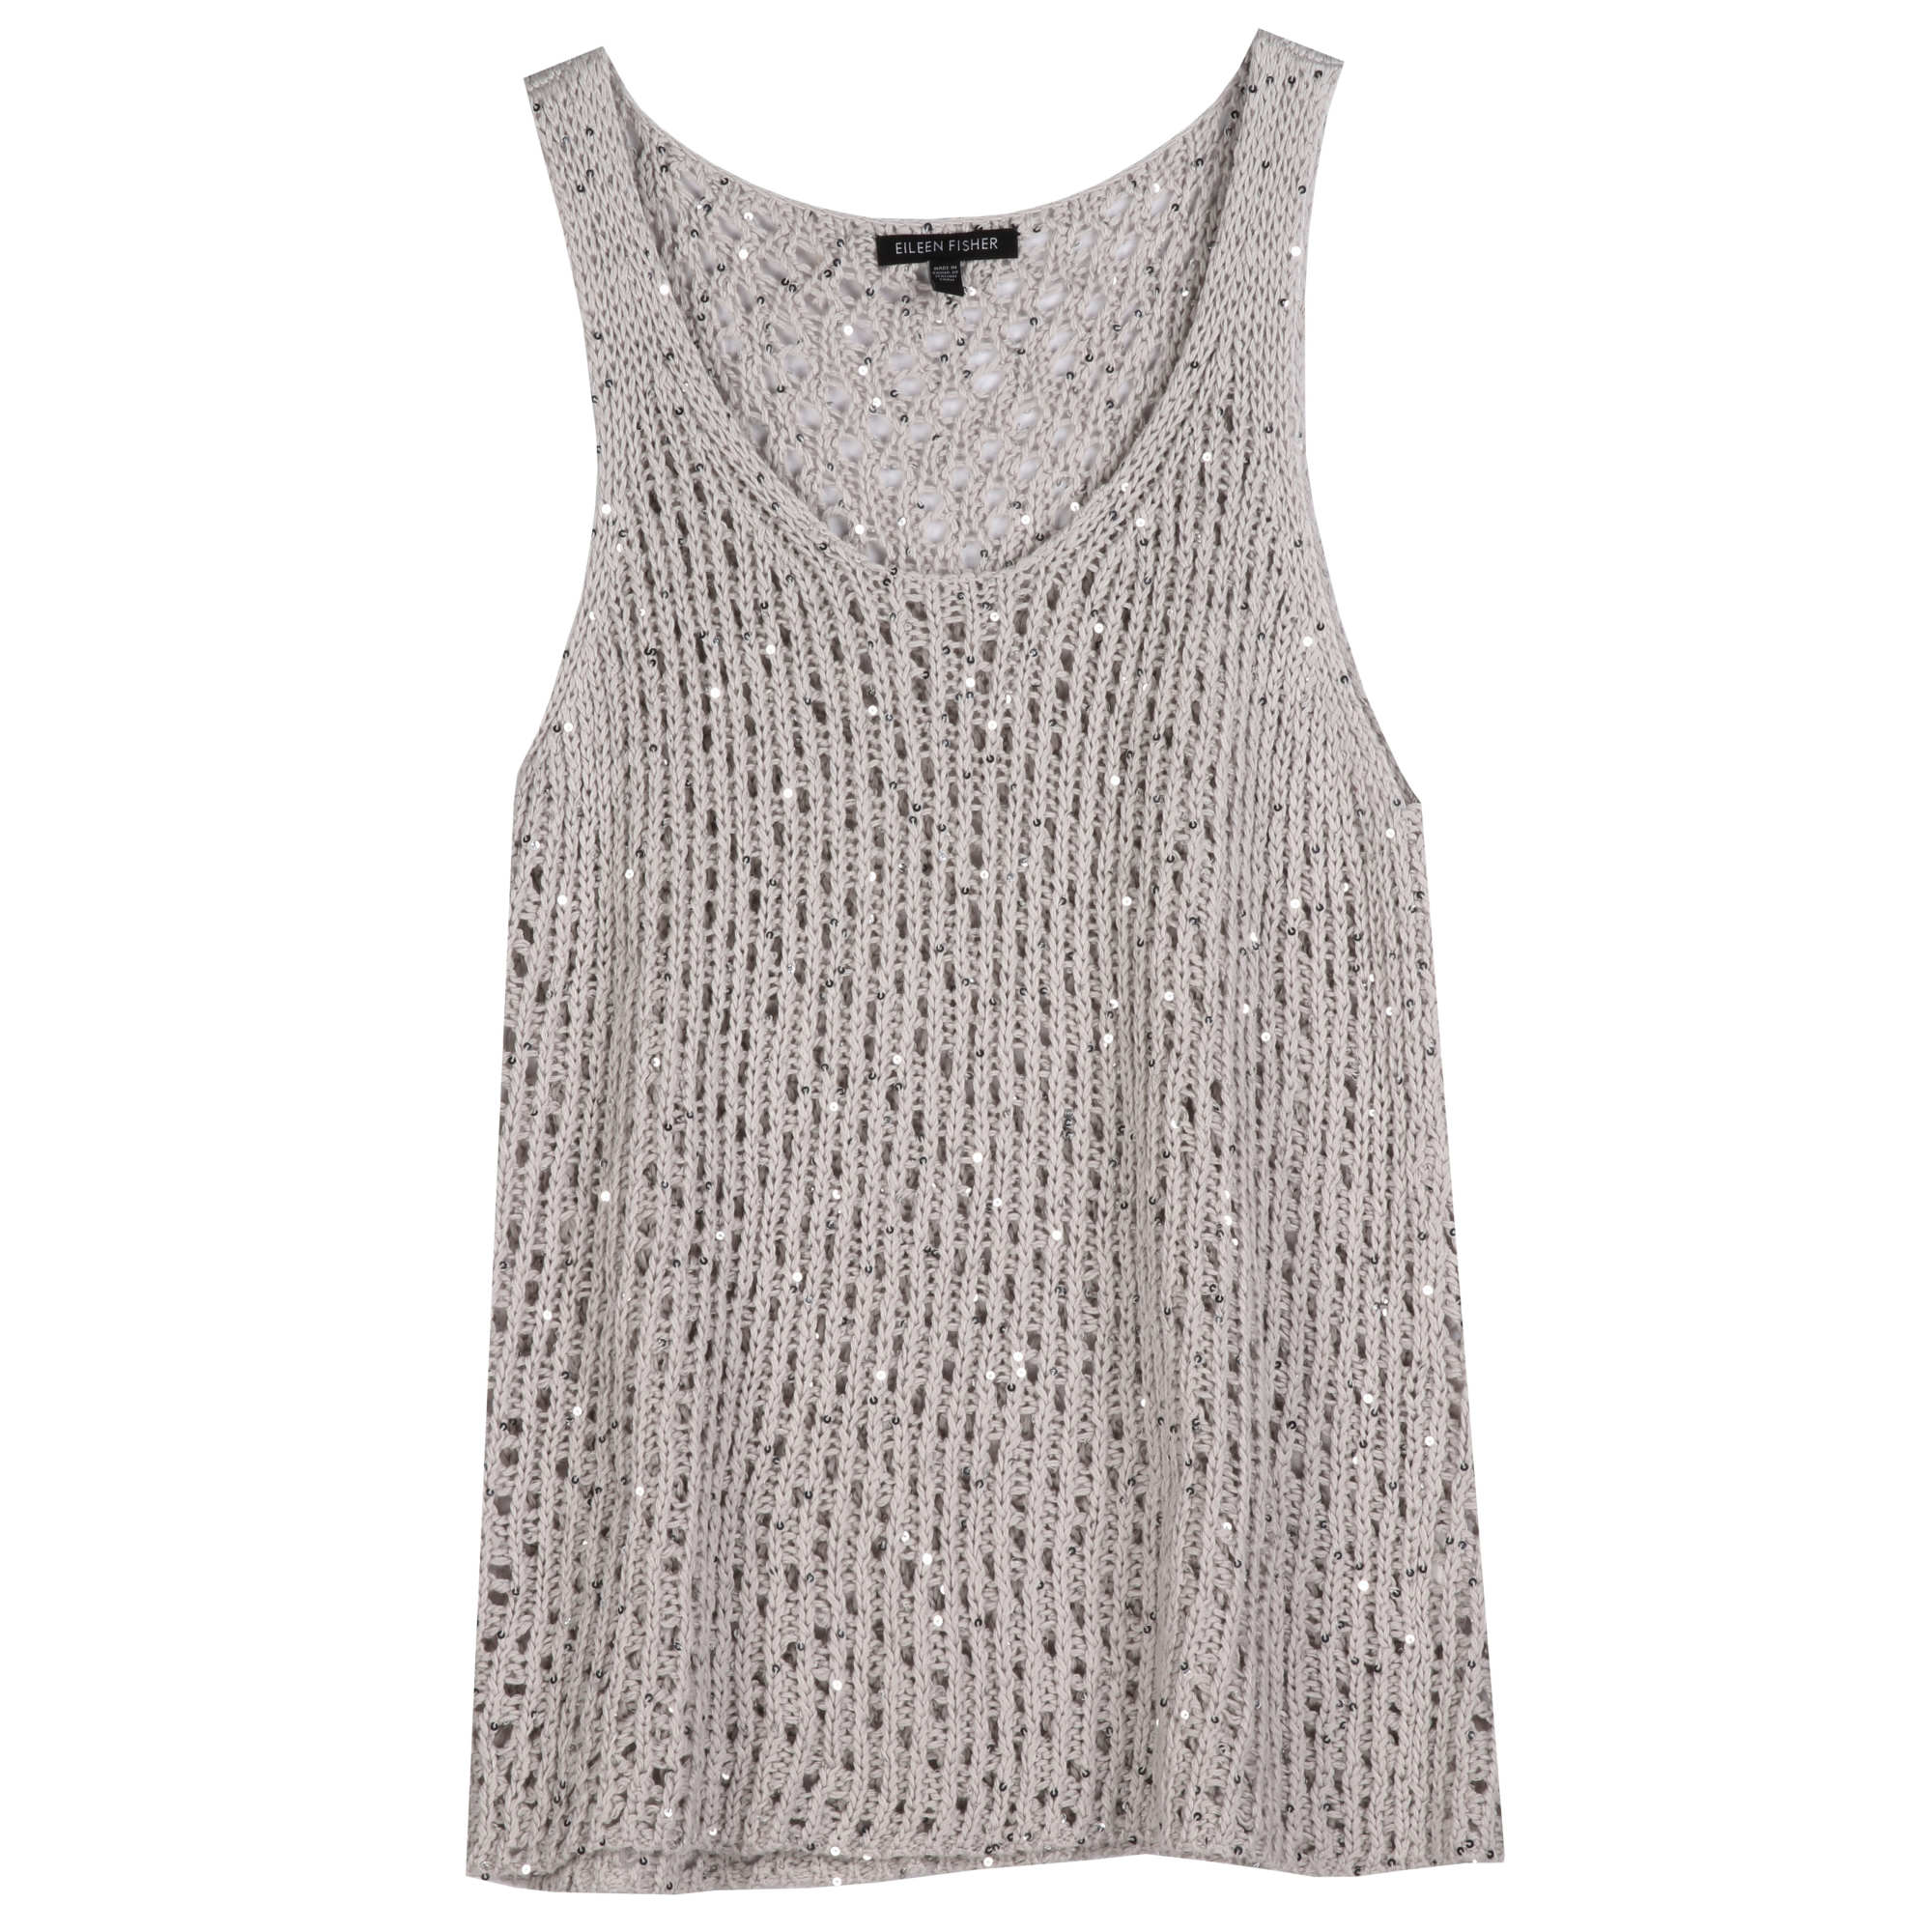 Sequins Chainmail Mesh Tank